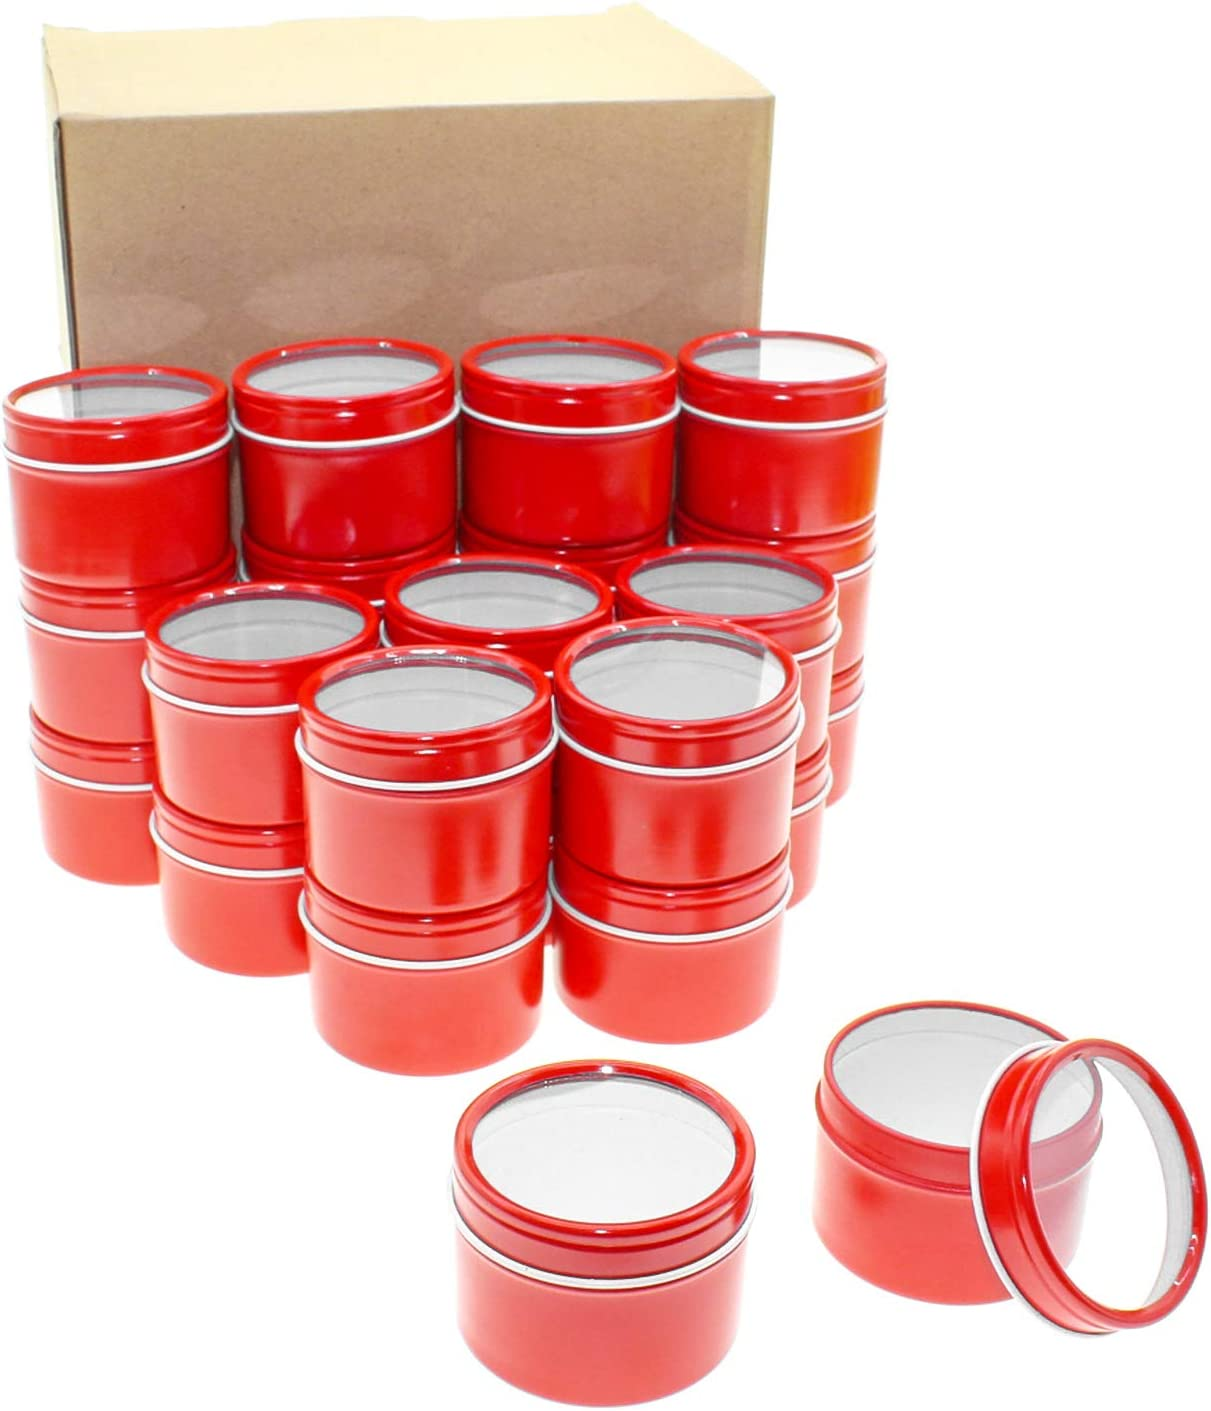 Mimi Pack 24 Pack Tins 1 oz Deep Round Tins with Clear Window Lids Empty Tin Containers Cosmetics Tins Party Favors Tins and Food Storage Containers(Red)